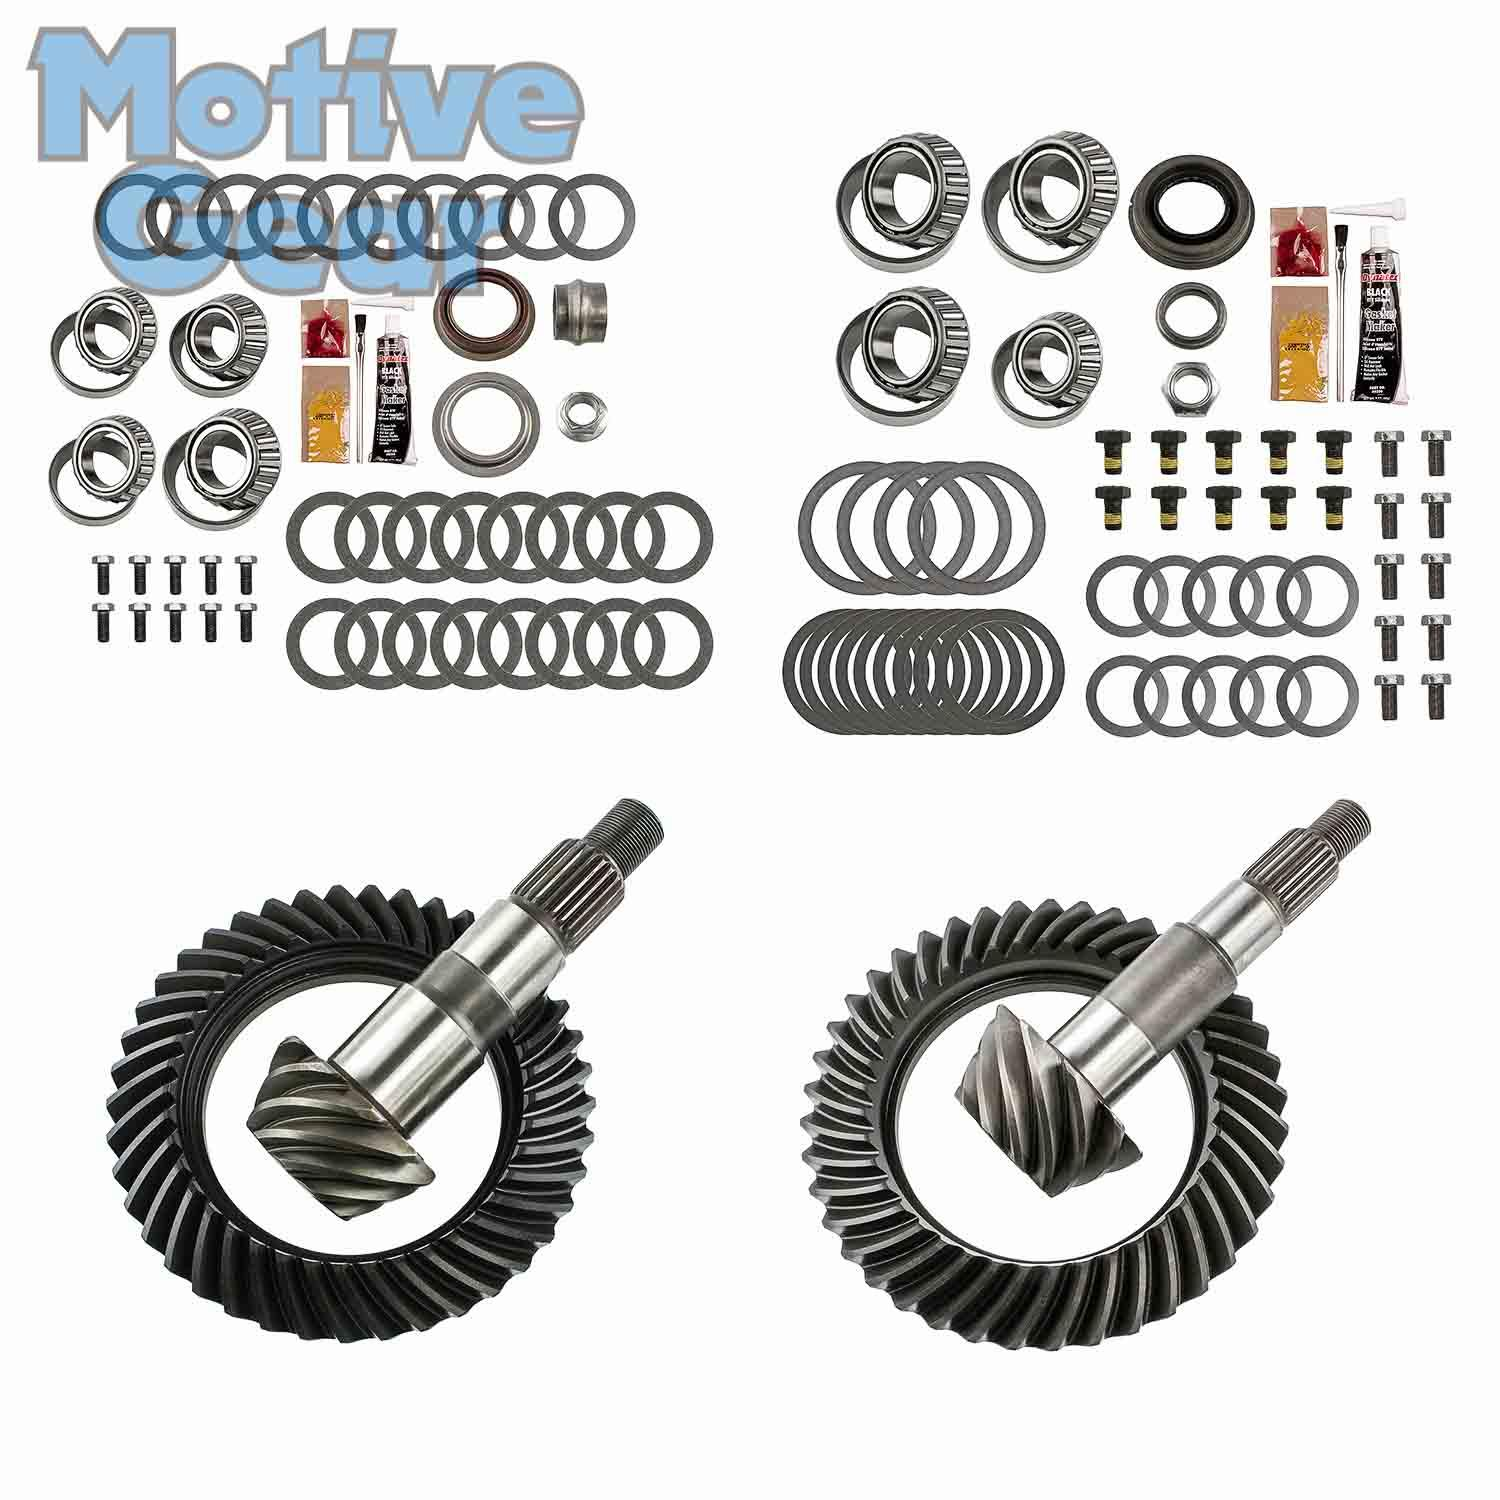 MGK-100 Motive Gear/Midwest Truck Differential Ring and Pinion DANA